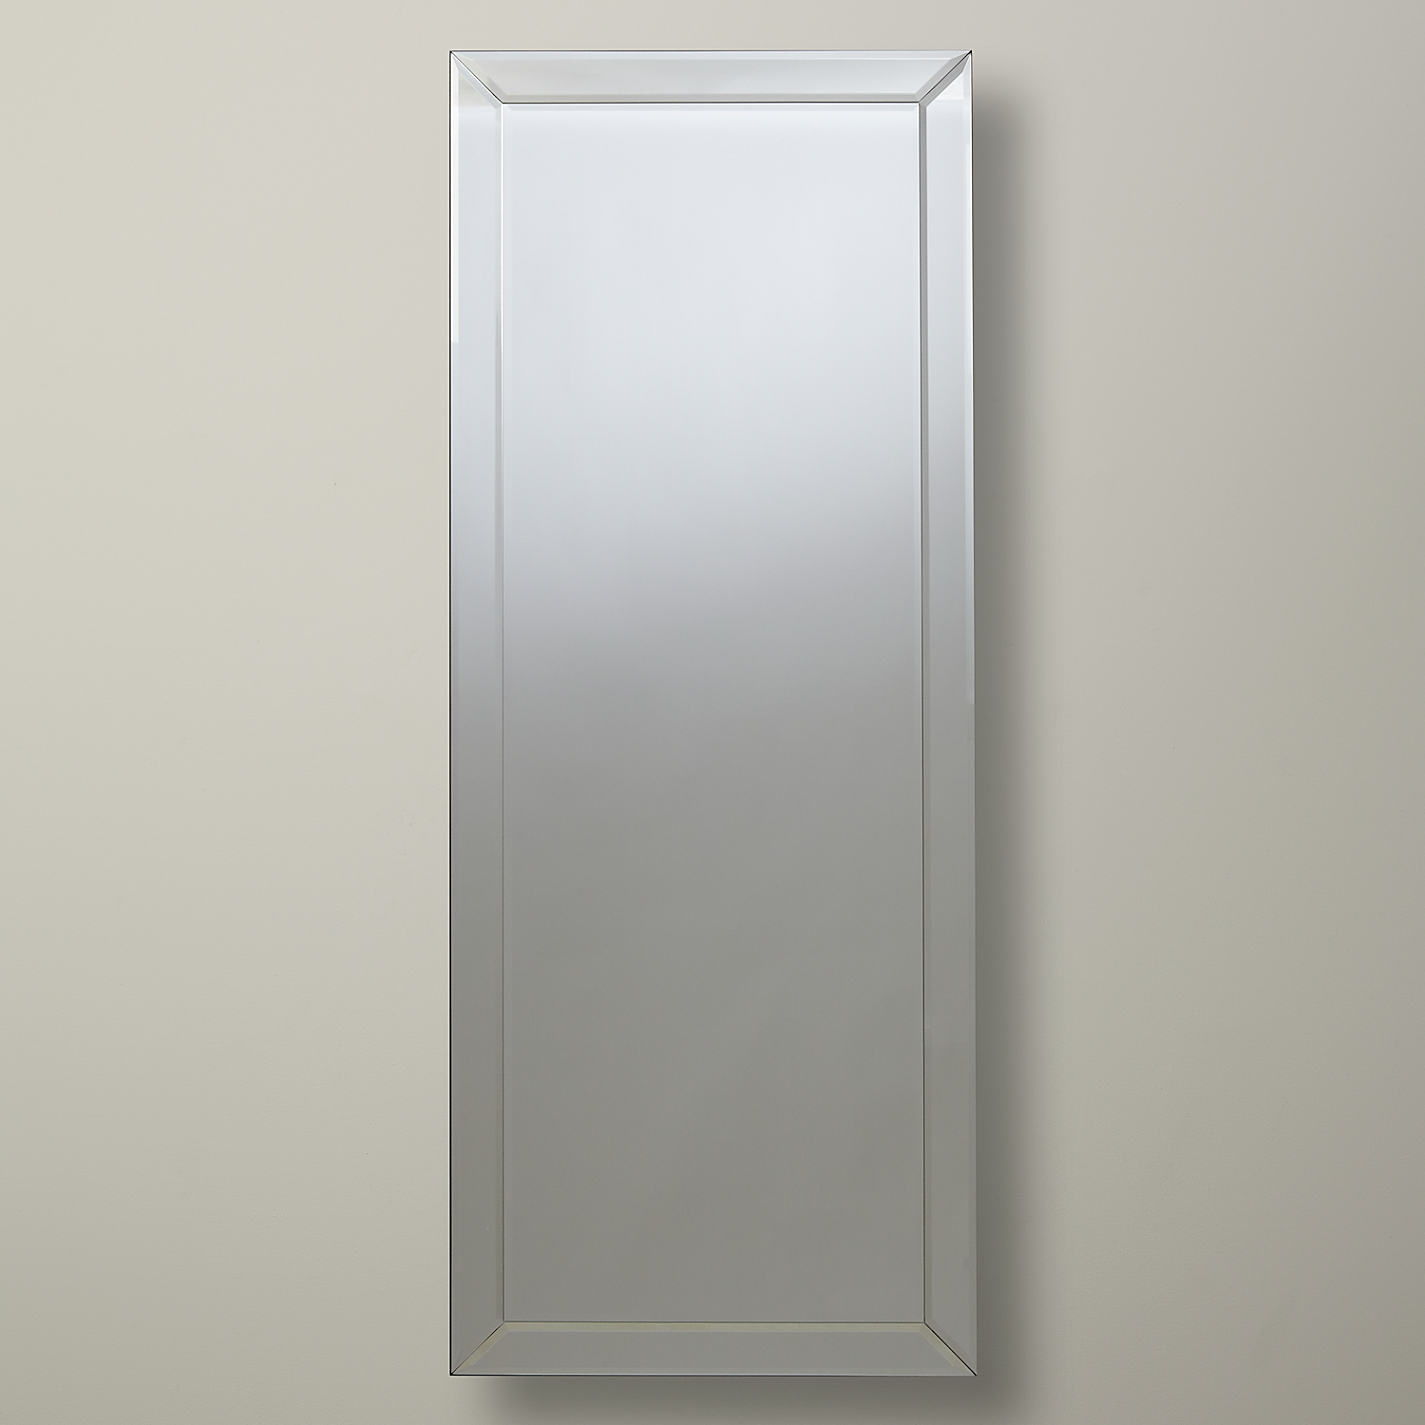 Bevelled Mirror Large Bevelled Mirror As Indoor Decorative Touch With Regard To Large Bevelled Edge Mirror (Image 1 of 15)